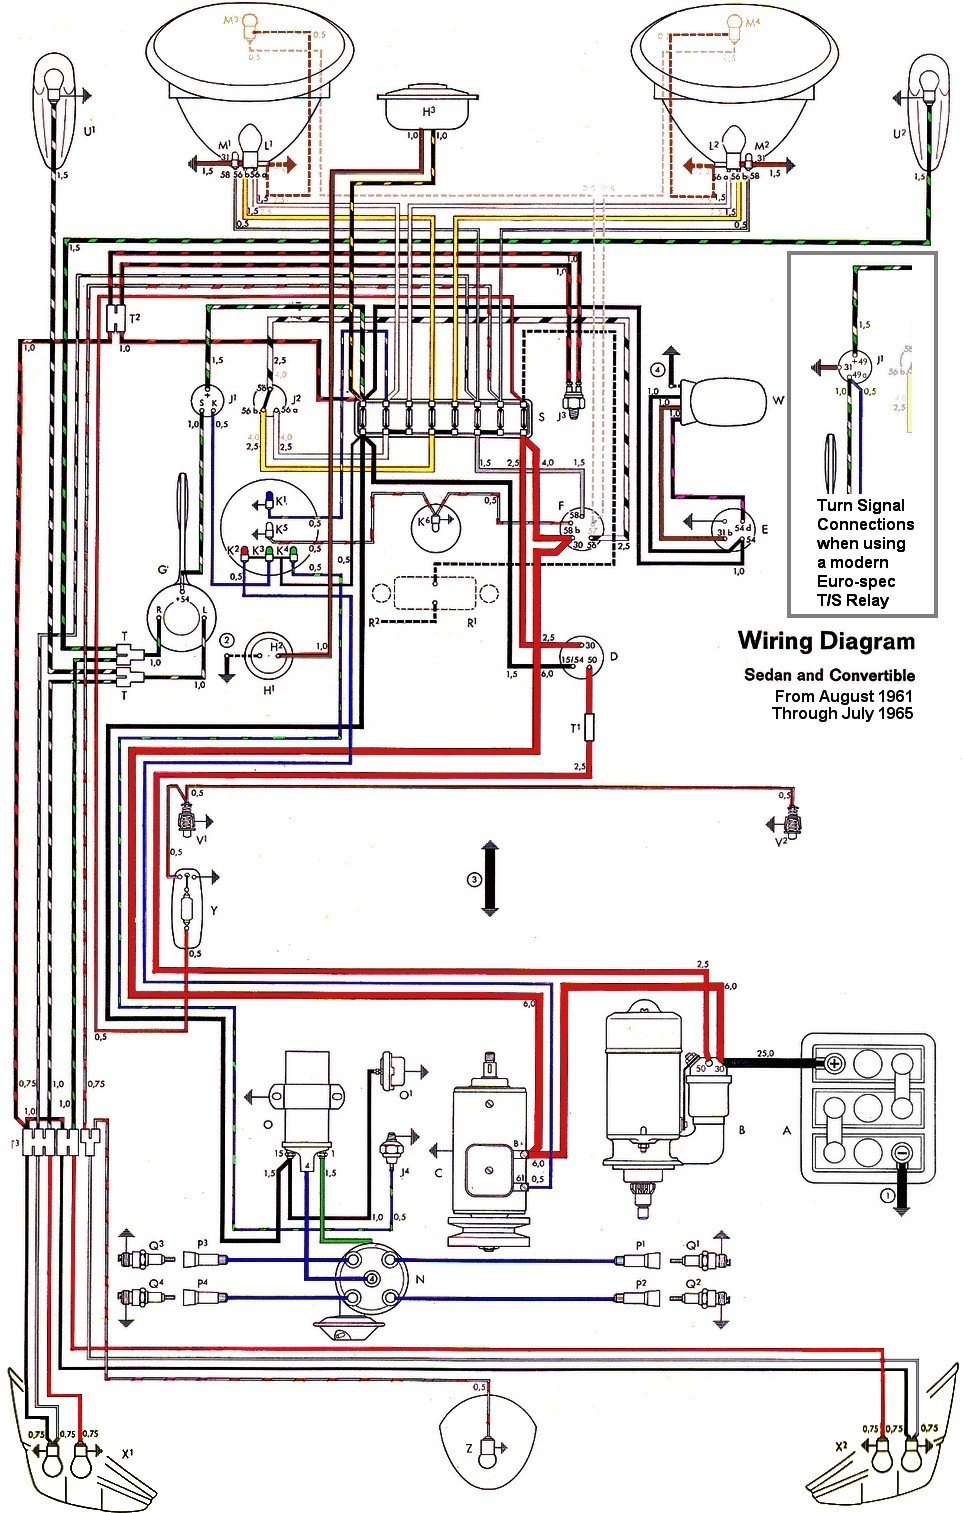 75 vw beetle wiring diagram trusted schematics wiring diagrams u2022 rh bestbooksrichtreasures com 1972 vw super beetle fuse box diagram 1972 vw super beetle fuse box diagram